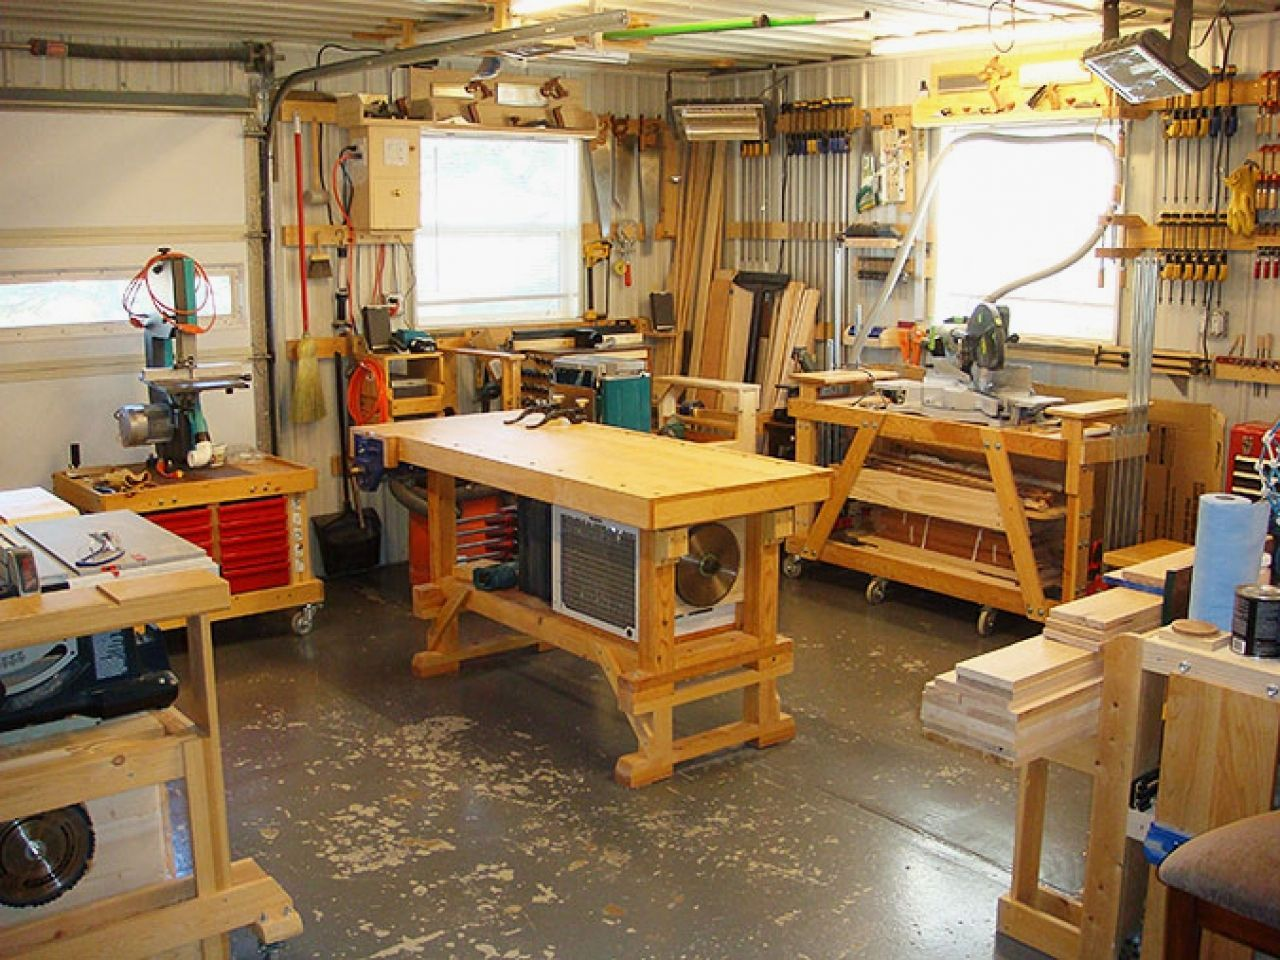 Small Shop Layout Design Small Woodworking Shop Design Simple Small Woodwork Small Woodworking Plans Small Woodworking Projects Small Woodworking Project Plans